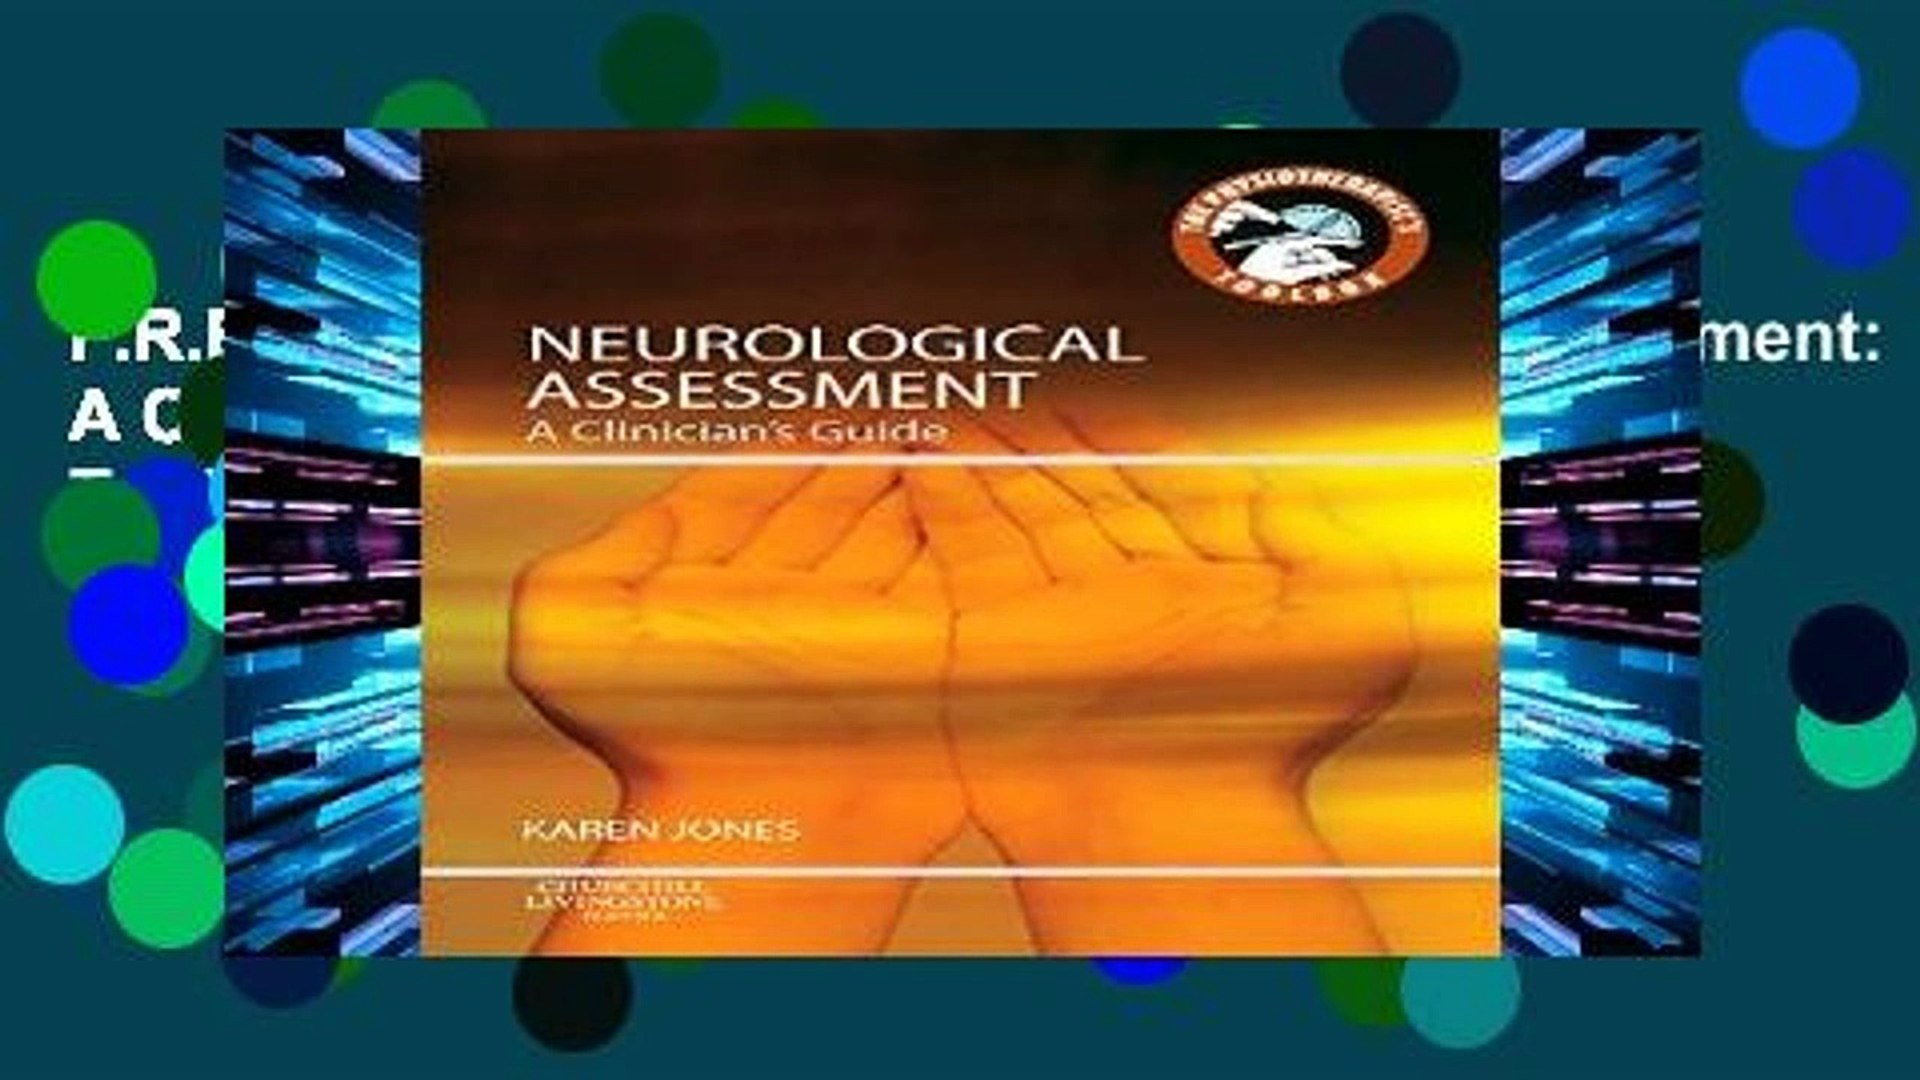 F R E E [D O W N L O A D] Neurological Assessment: A Clinician s Guide, 1e  (Physiotherapist s Tool